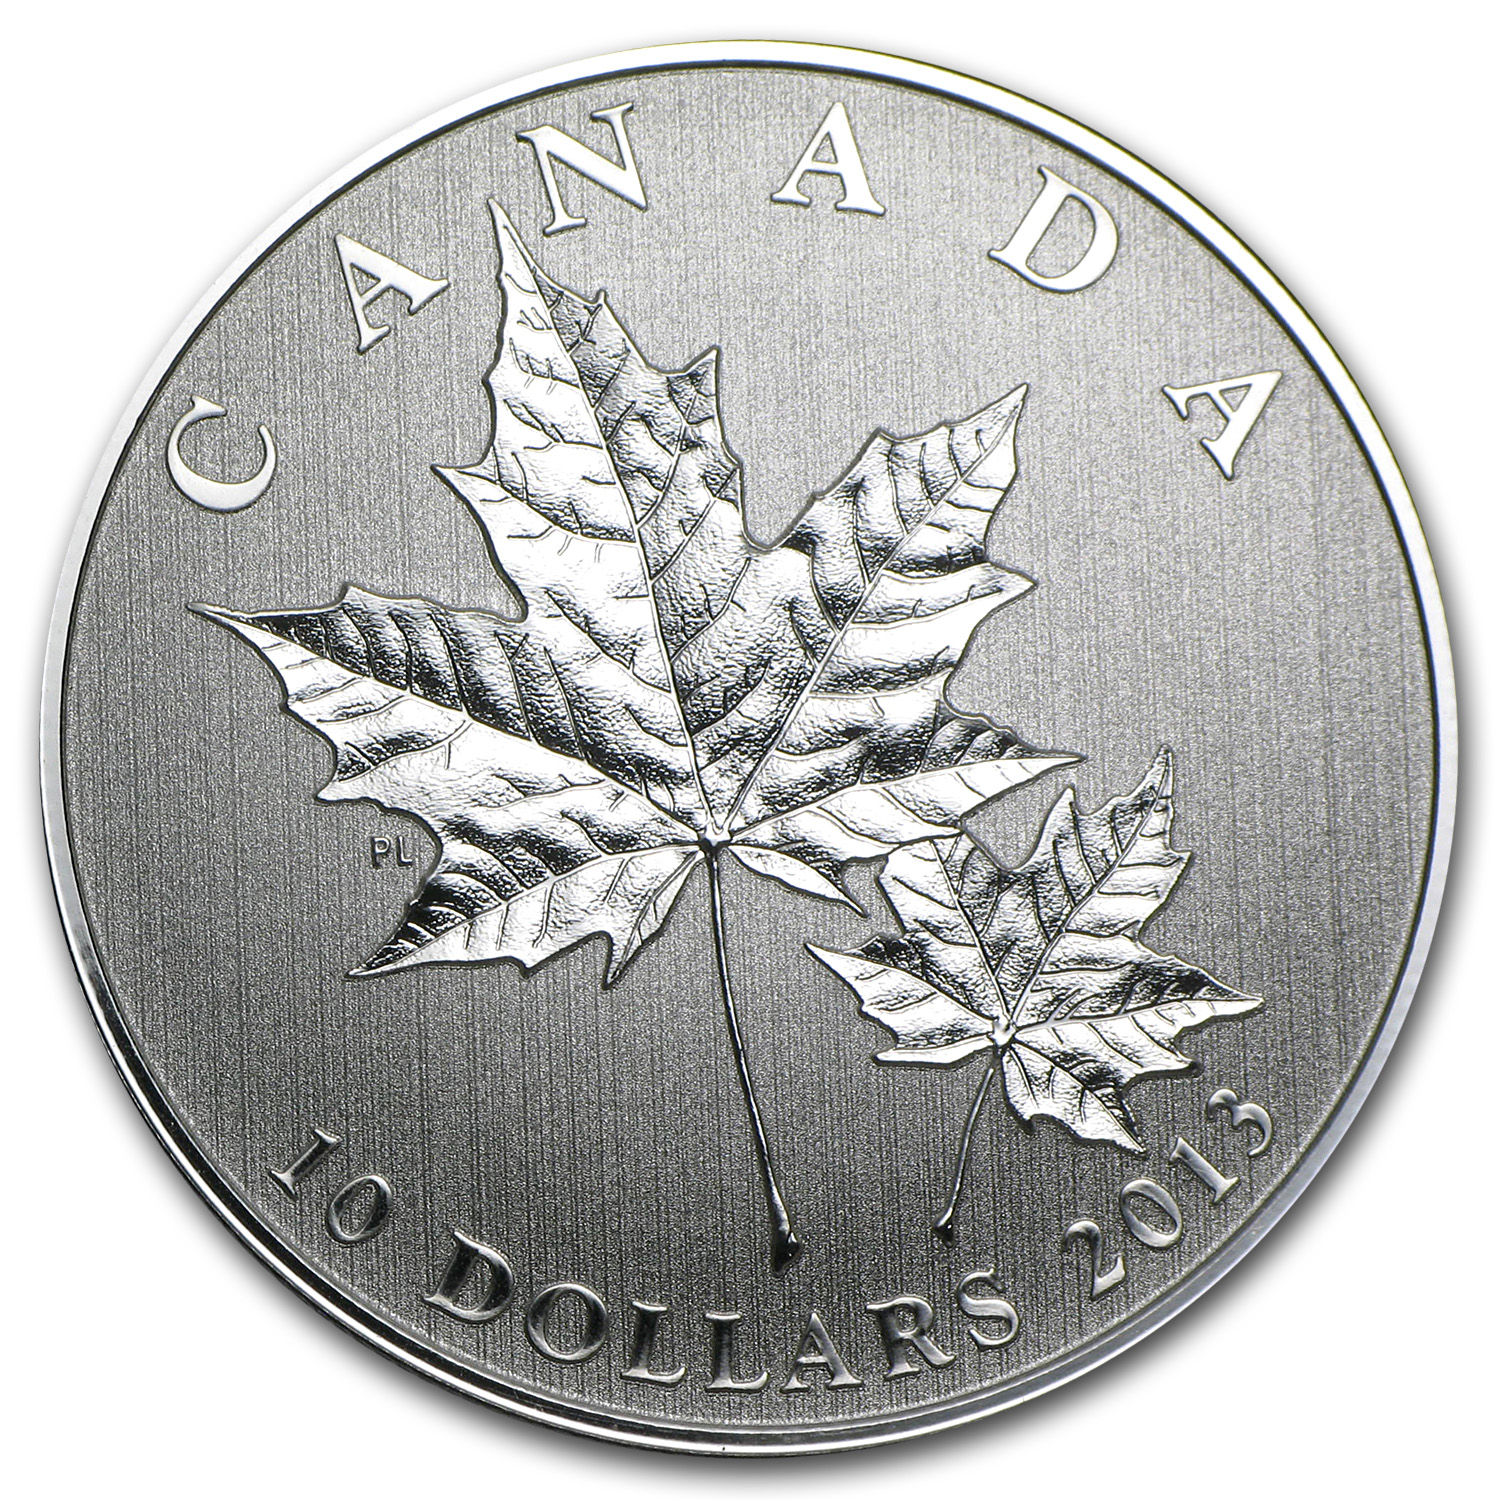 2013 1/2 oz Silver Canadian $10 Maple Leaf Forever (w/Box & COA)